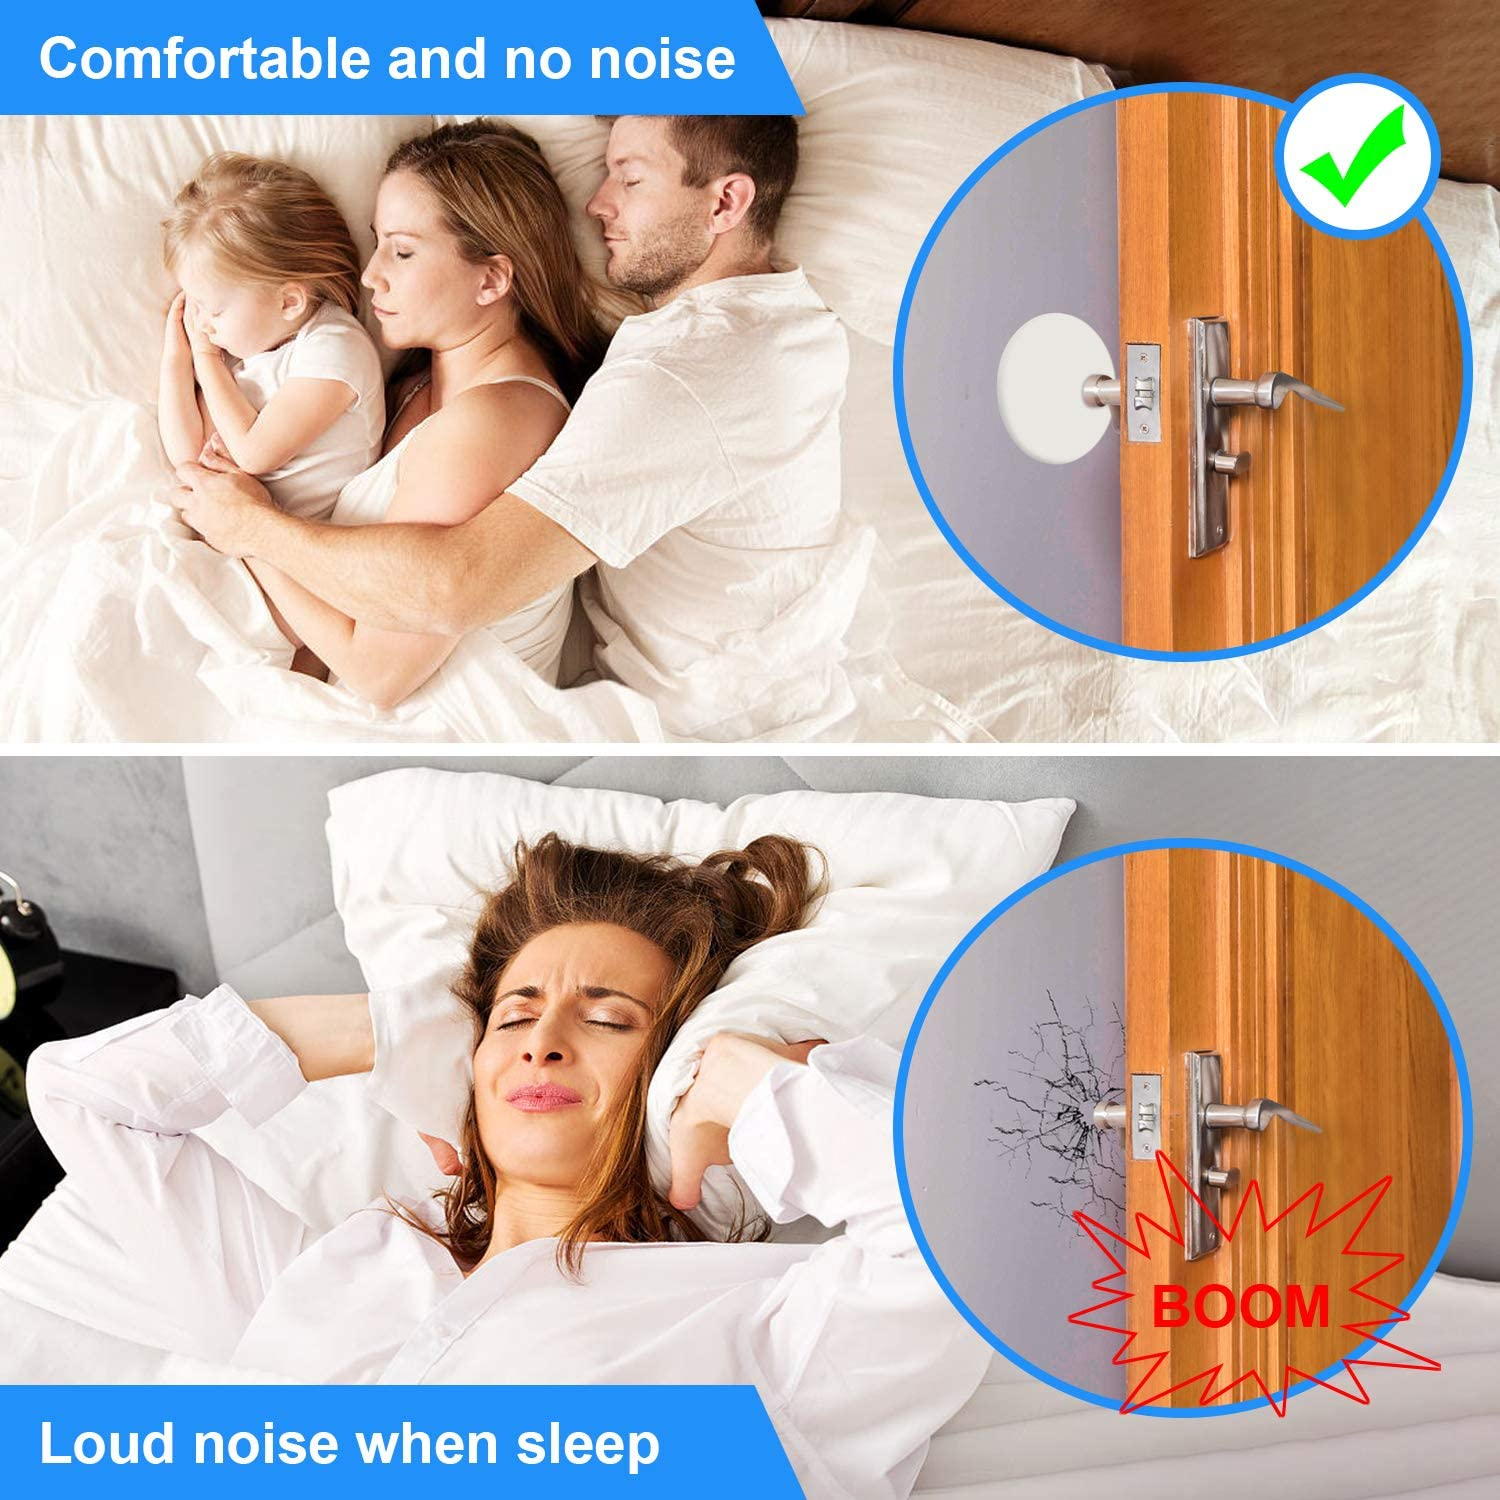 6 Pack Door Stopper Wall Protector, 3.15 Wall Protector with Self Adhesive 3M Sticker Protect The Wall from Damage and Avoid Noise